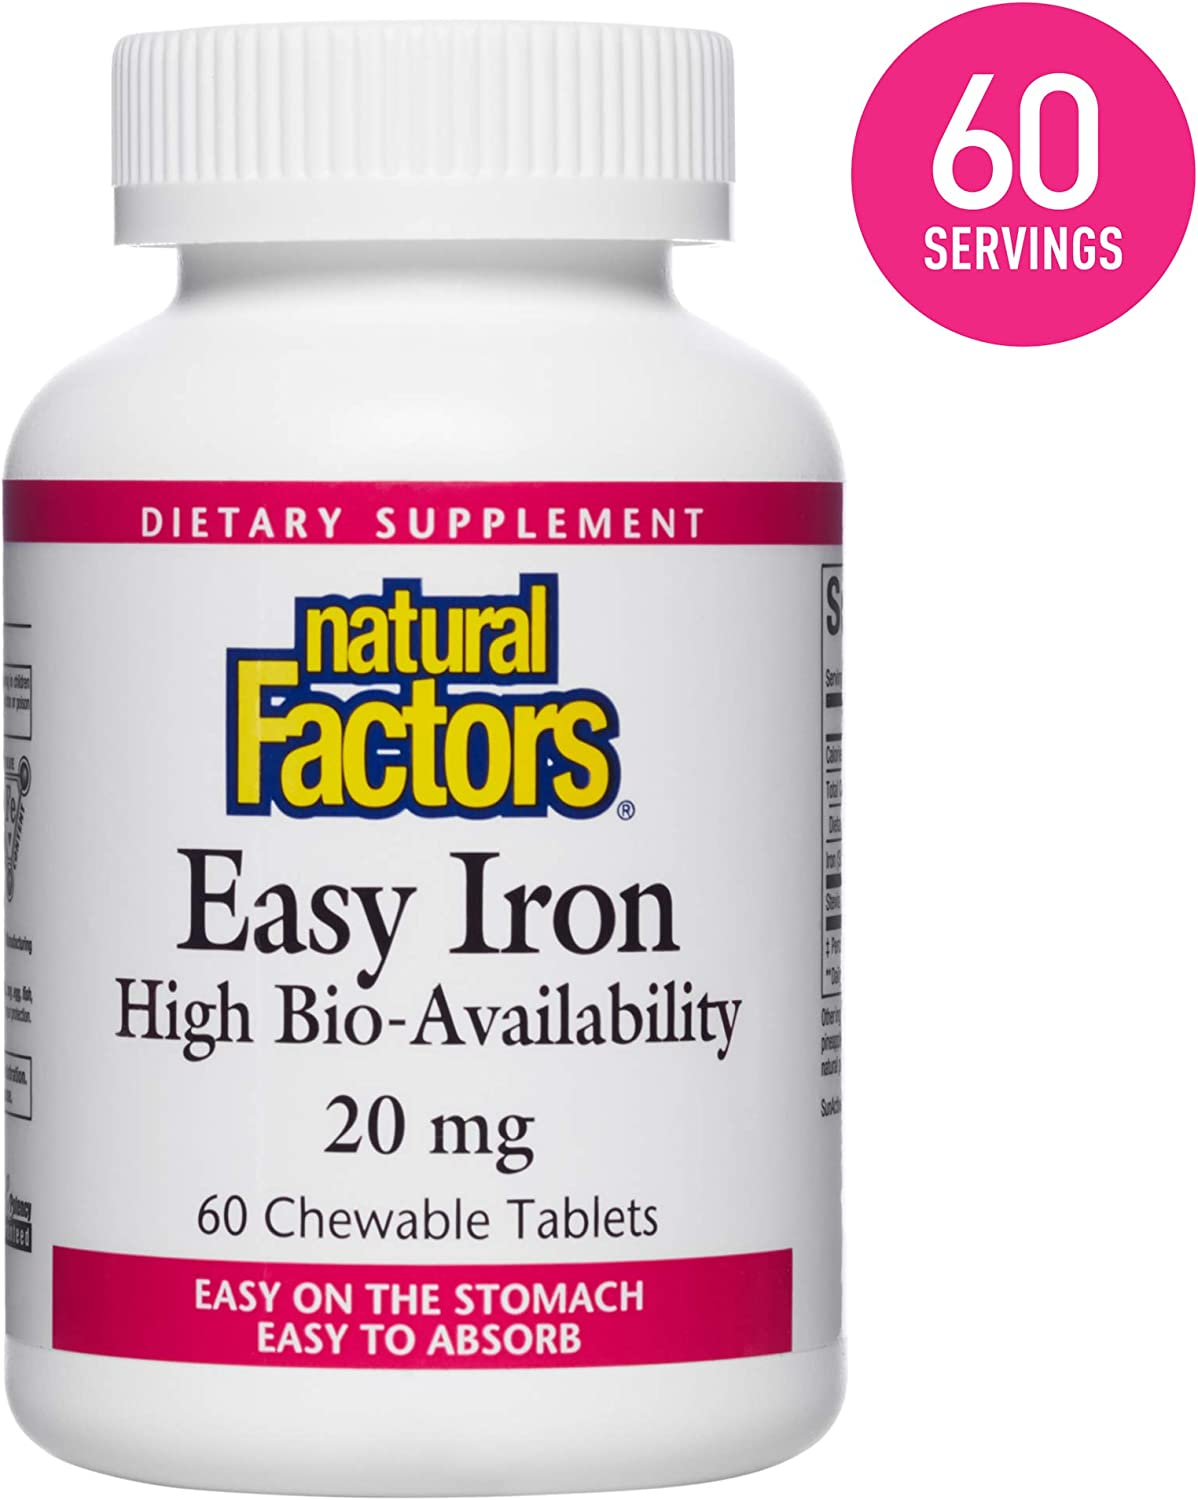 Natural Factors, Easy Iron Chewable, Gentle Supplement for Energy and Metabolism Support, Vegan, Gluten Free, Tropical Fruit Flavor, 60 tablets (60 servings)